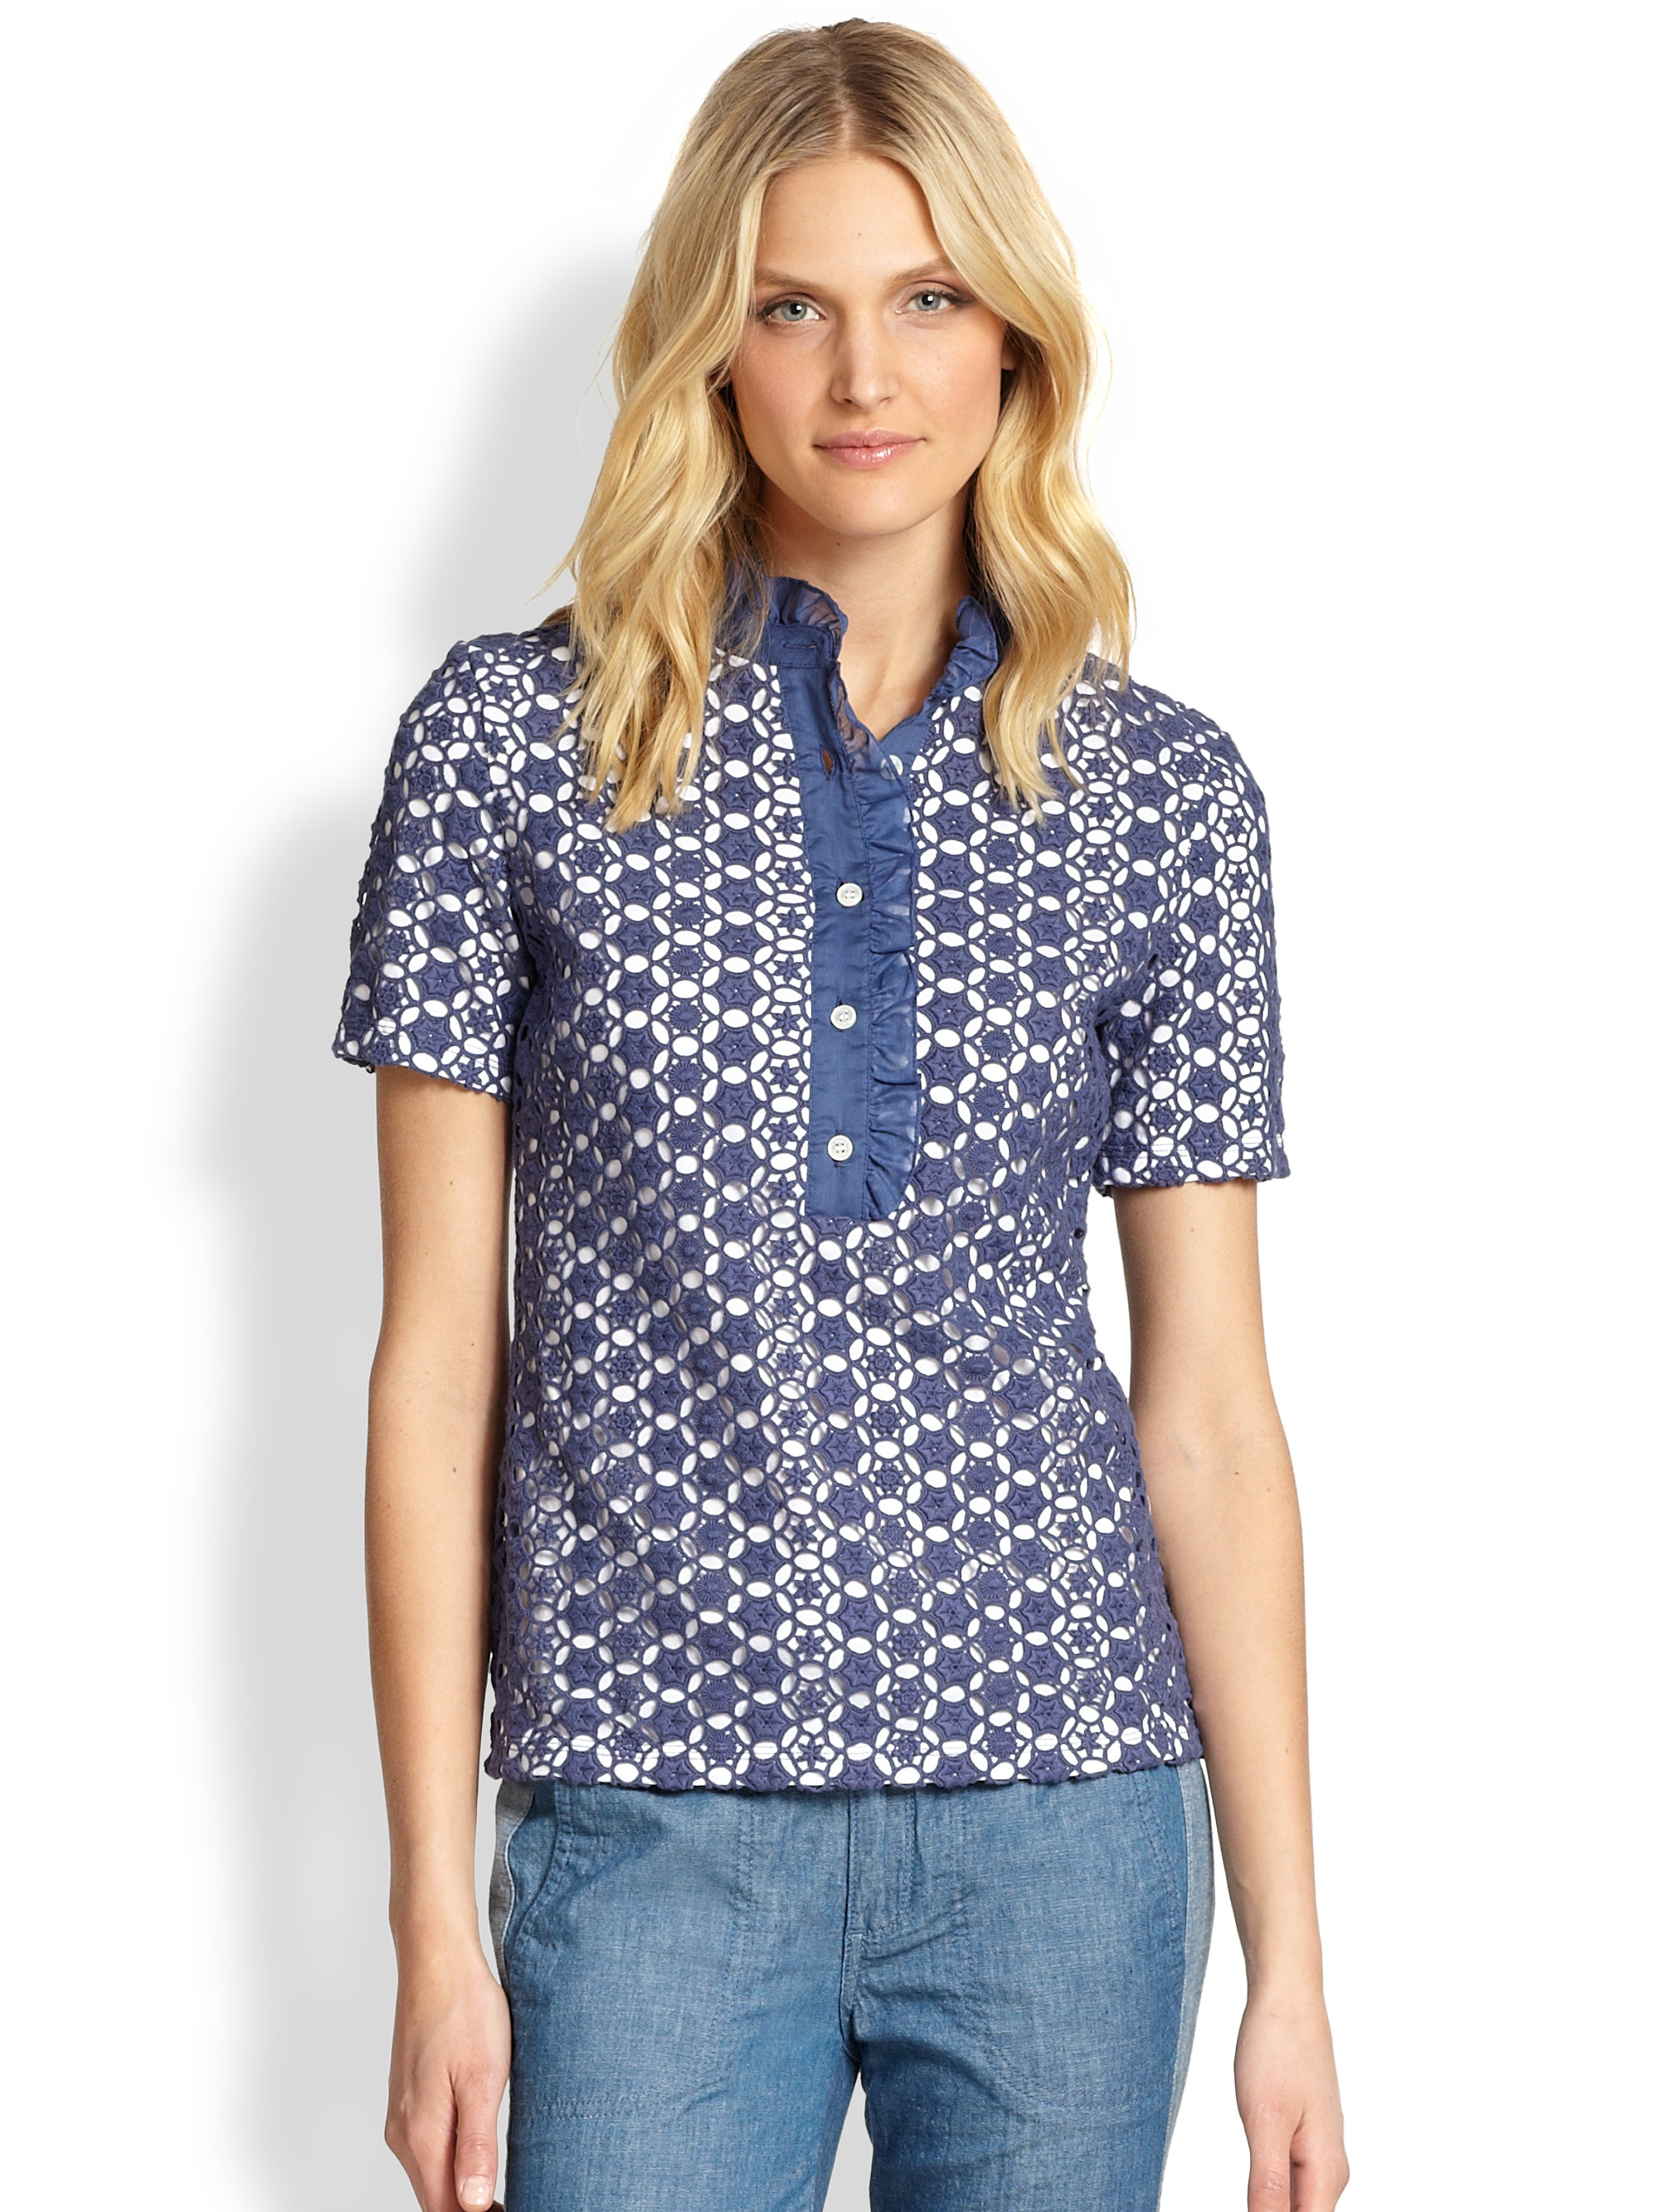 Tory Burch Lidia Lace Polo Shirt In Blue Indian Blue Lyst